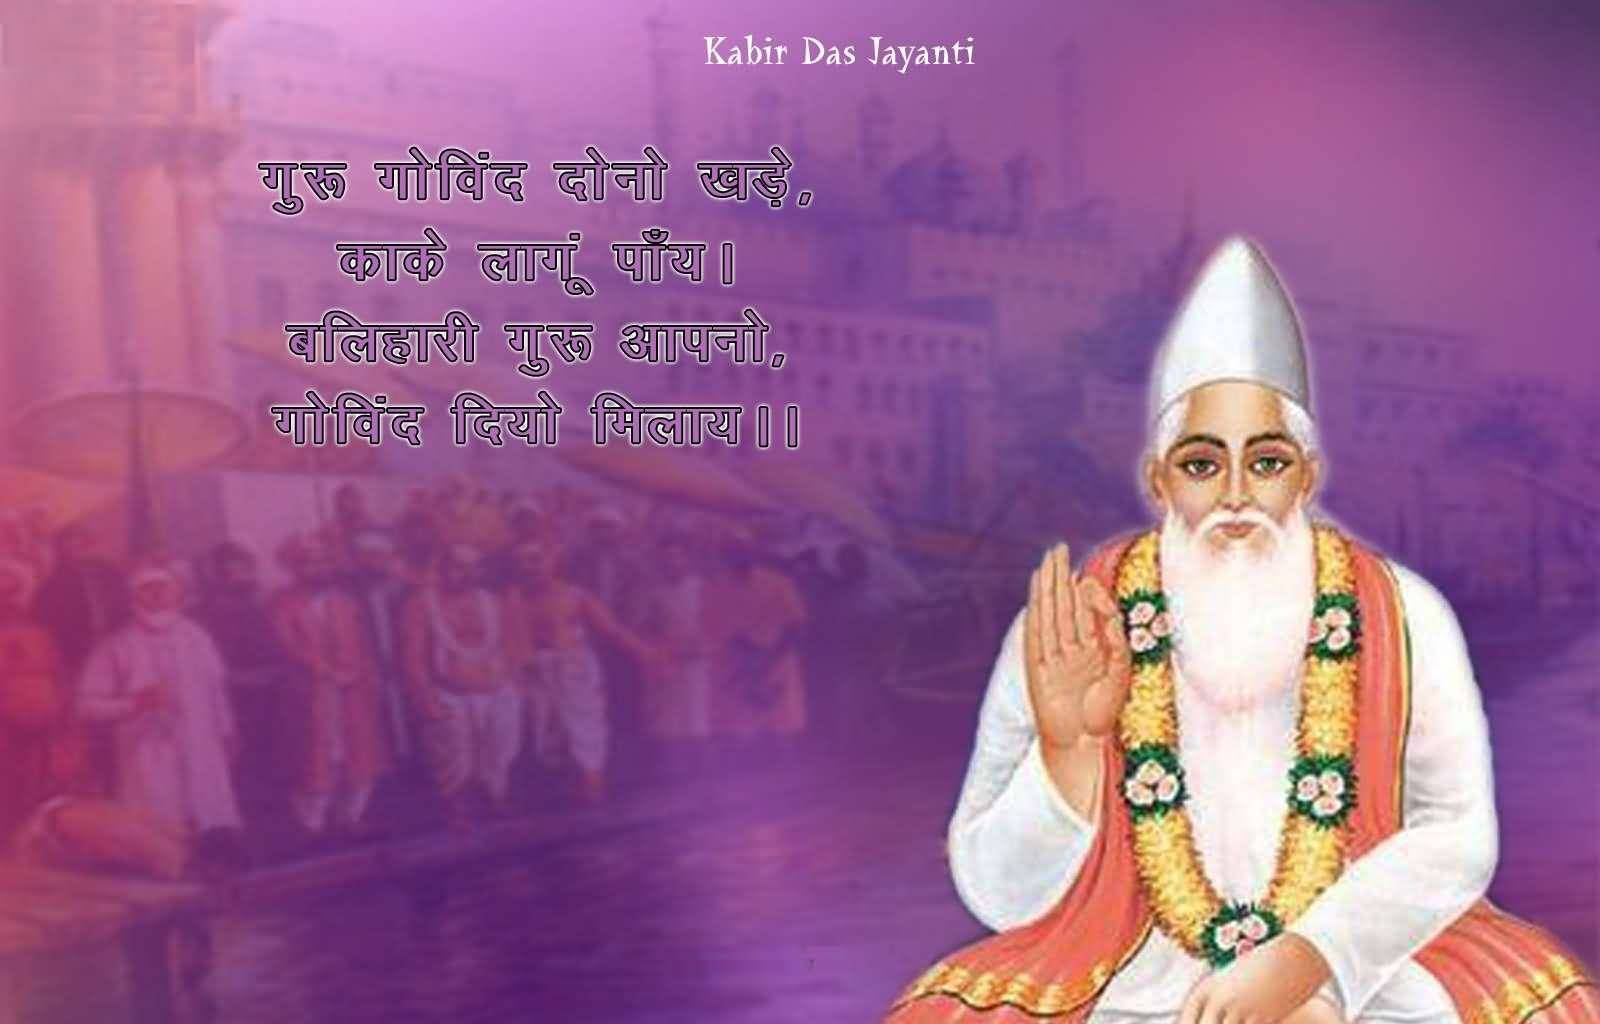 Satguru Kabir Sahib SMS, Wishes, blessings, Greetings, Messages, Facebook Fb Status, Shayari, Thoughts, Quotes.